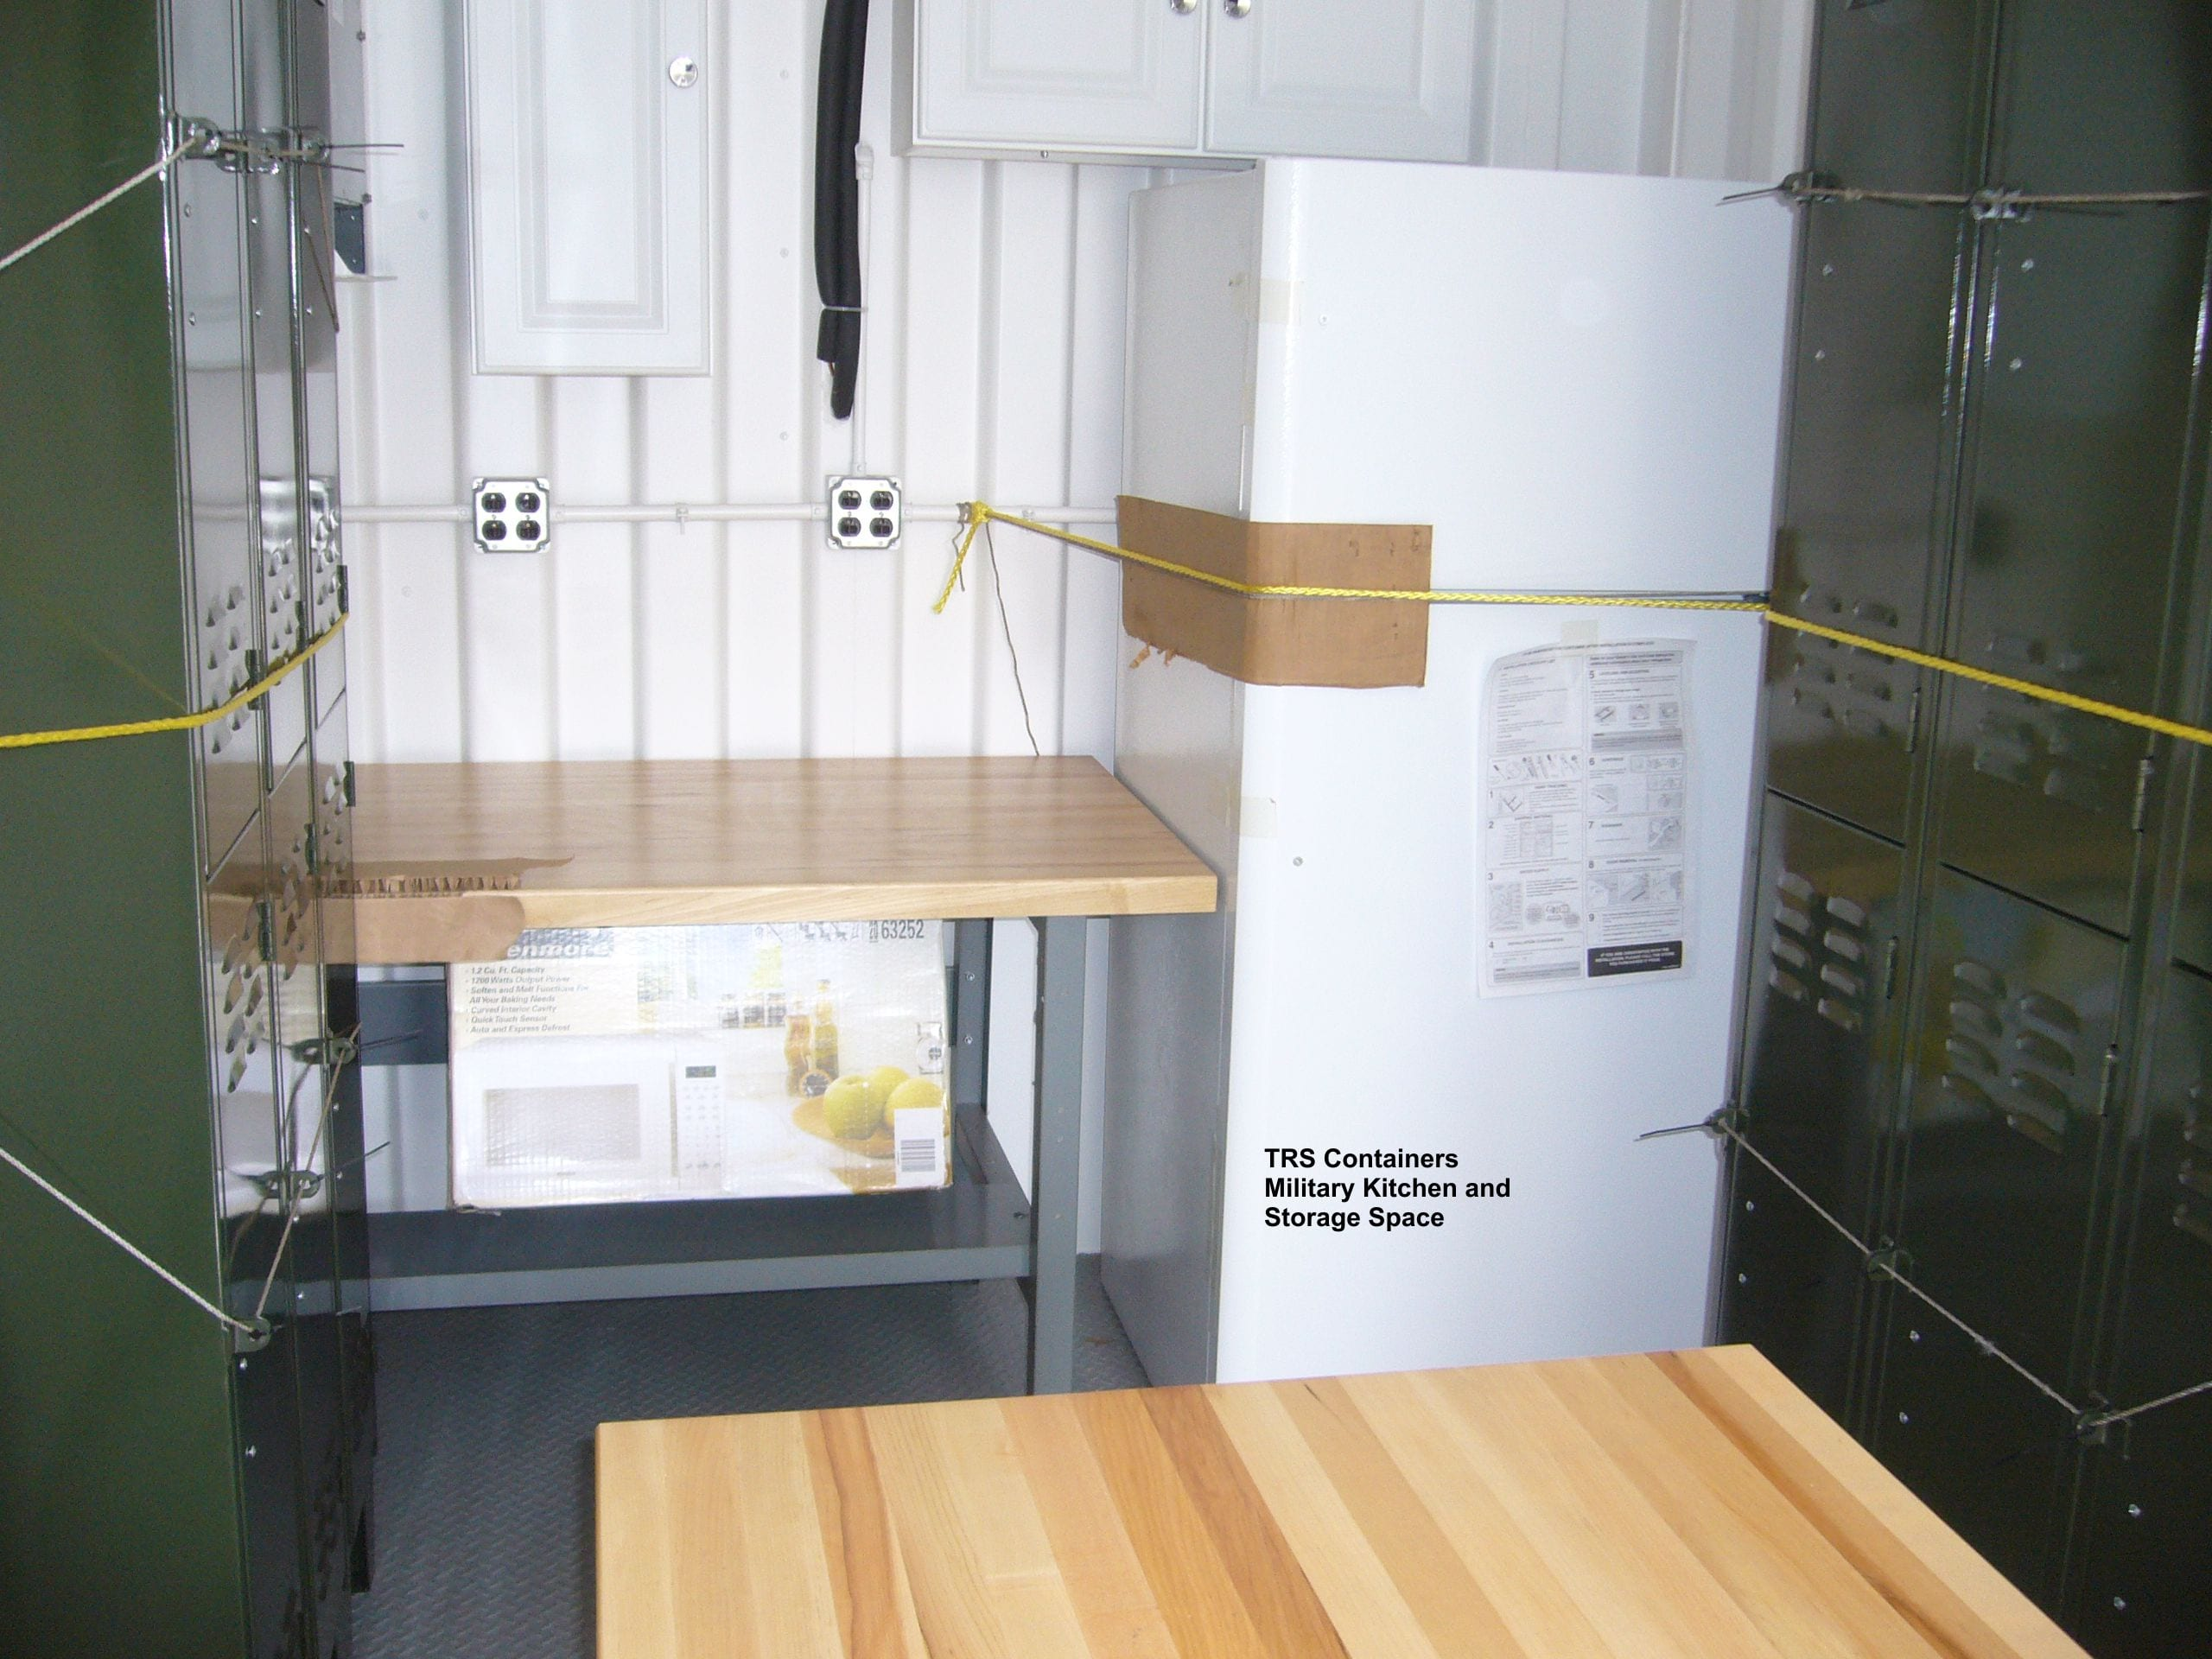 TRS Containers can take a standard steel ISO container and convert it into a kitchen